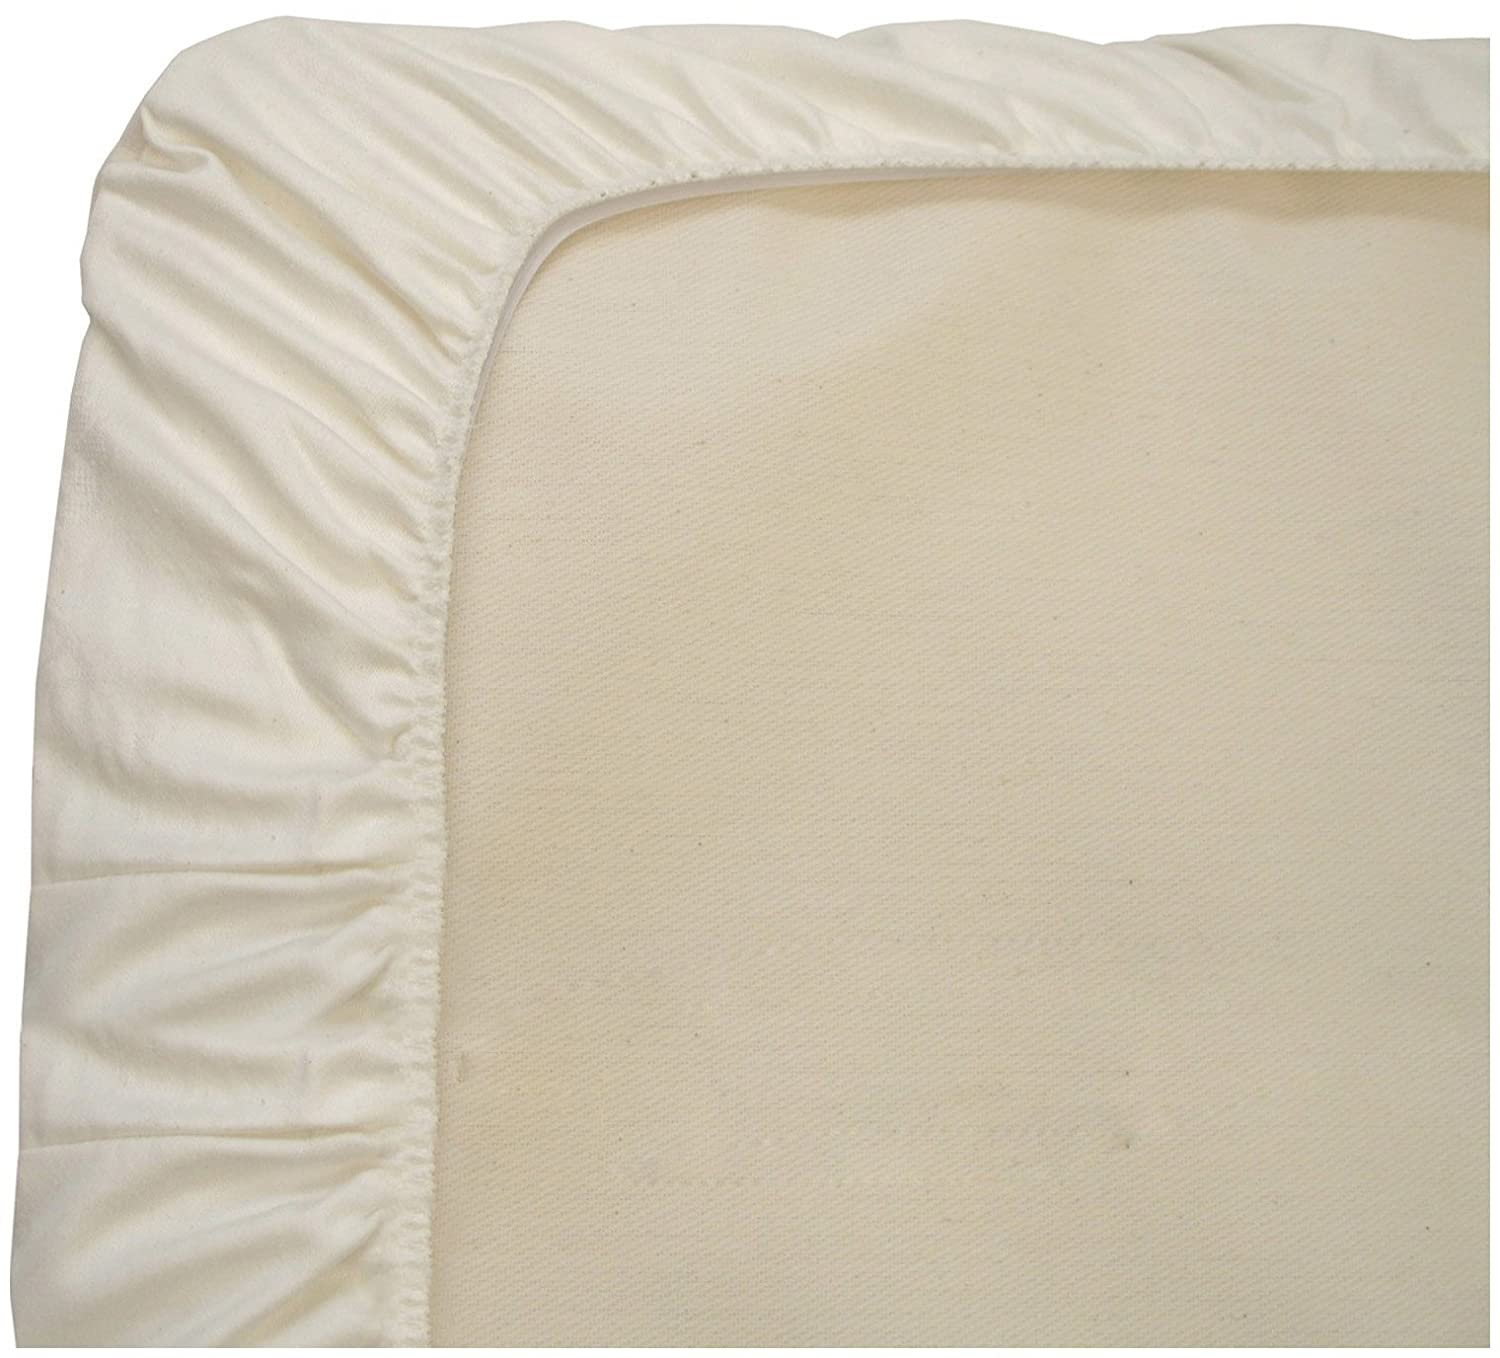 PC63W KID/_PPPP/_5252 Waterproof Fitted Naturepedic Organic Crib Protector Pad